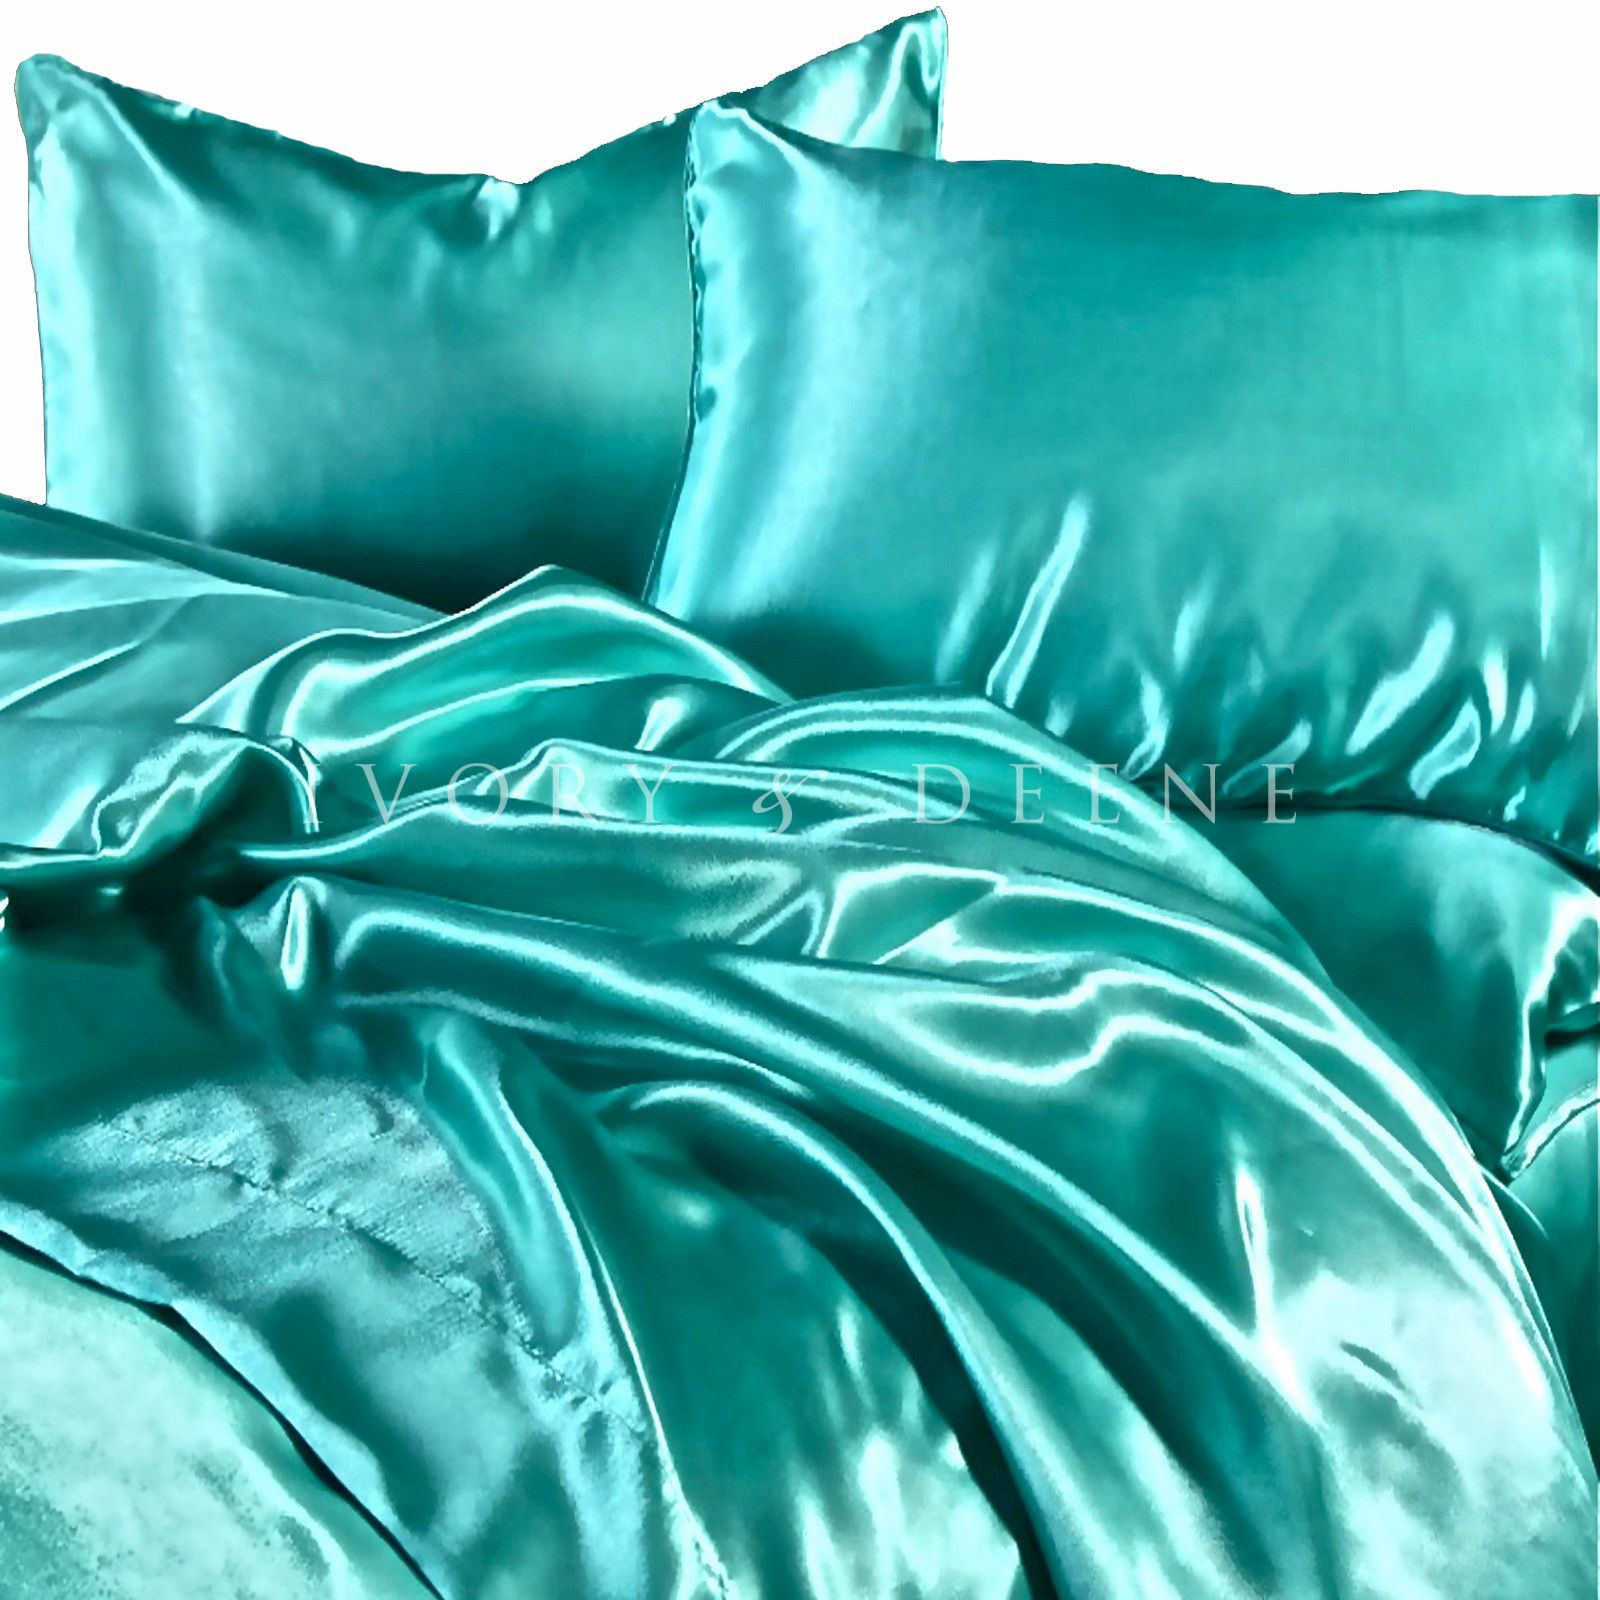 bedspreads amazing brown style bed living light sets appealing tiffany comforter blue nsyd for bedding photocolate and colored room queen ideas inspiring